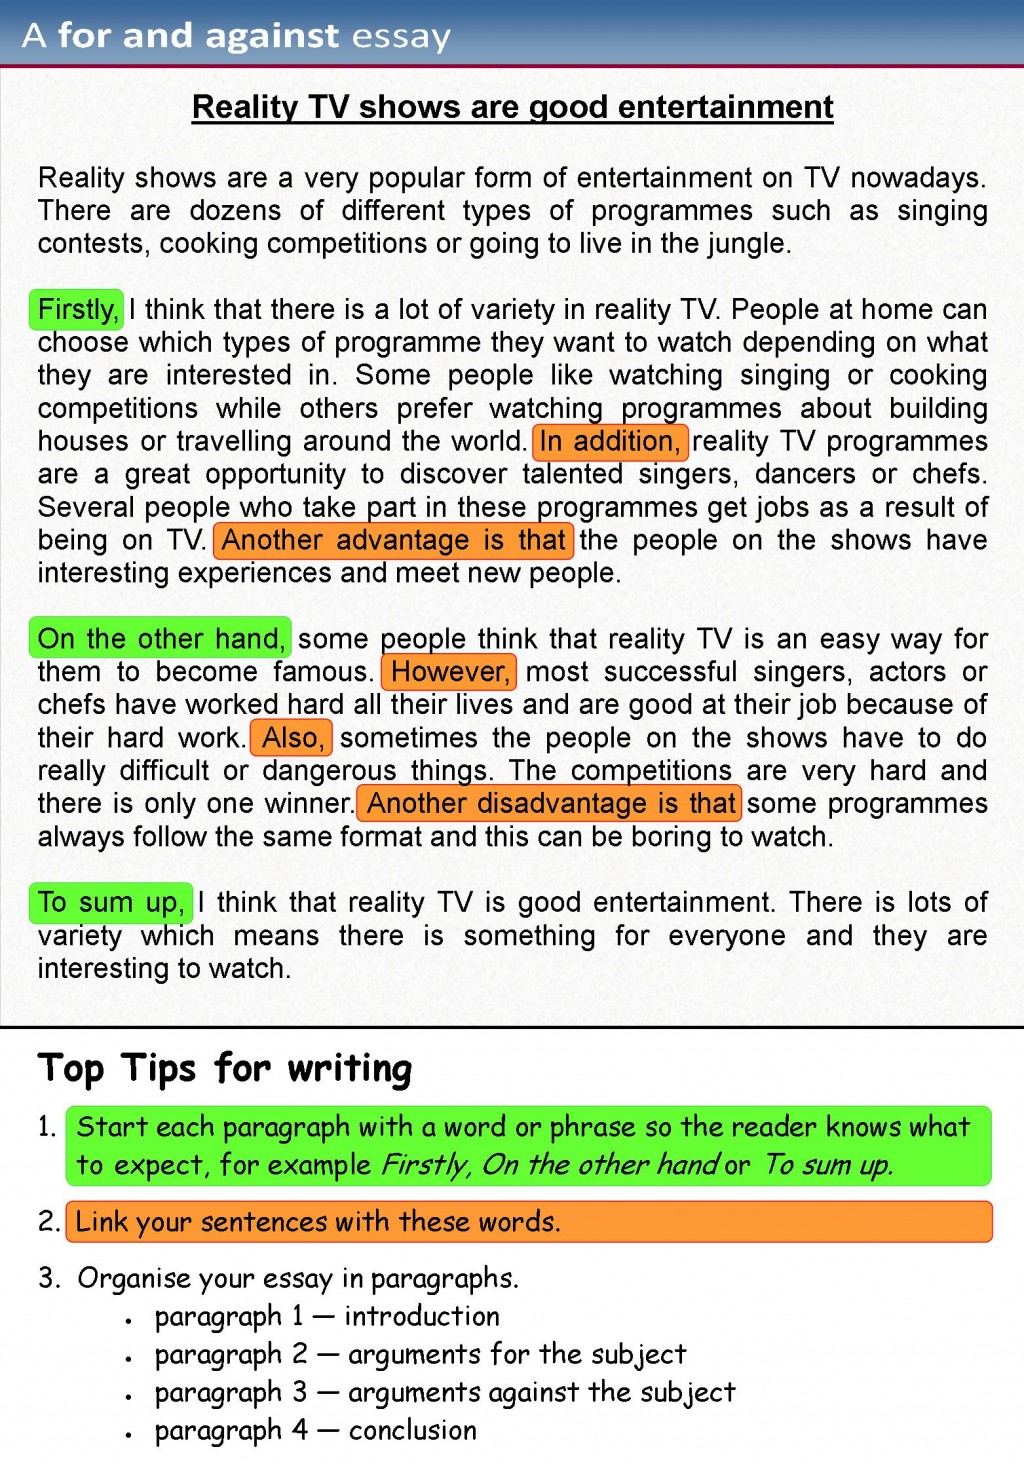 019 Essay Example How To Write And For Against 1 Unique An Outline 6th Grade Conclusion In Mla Format Large